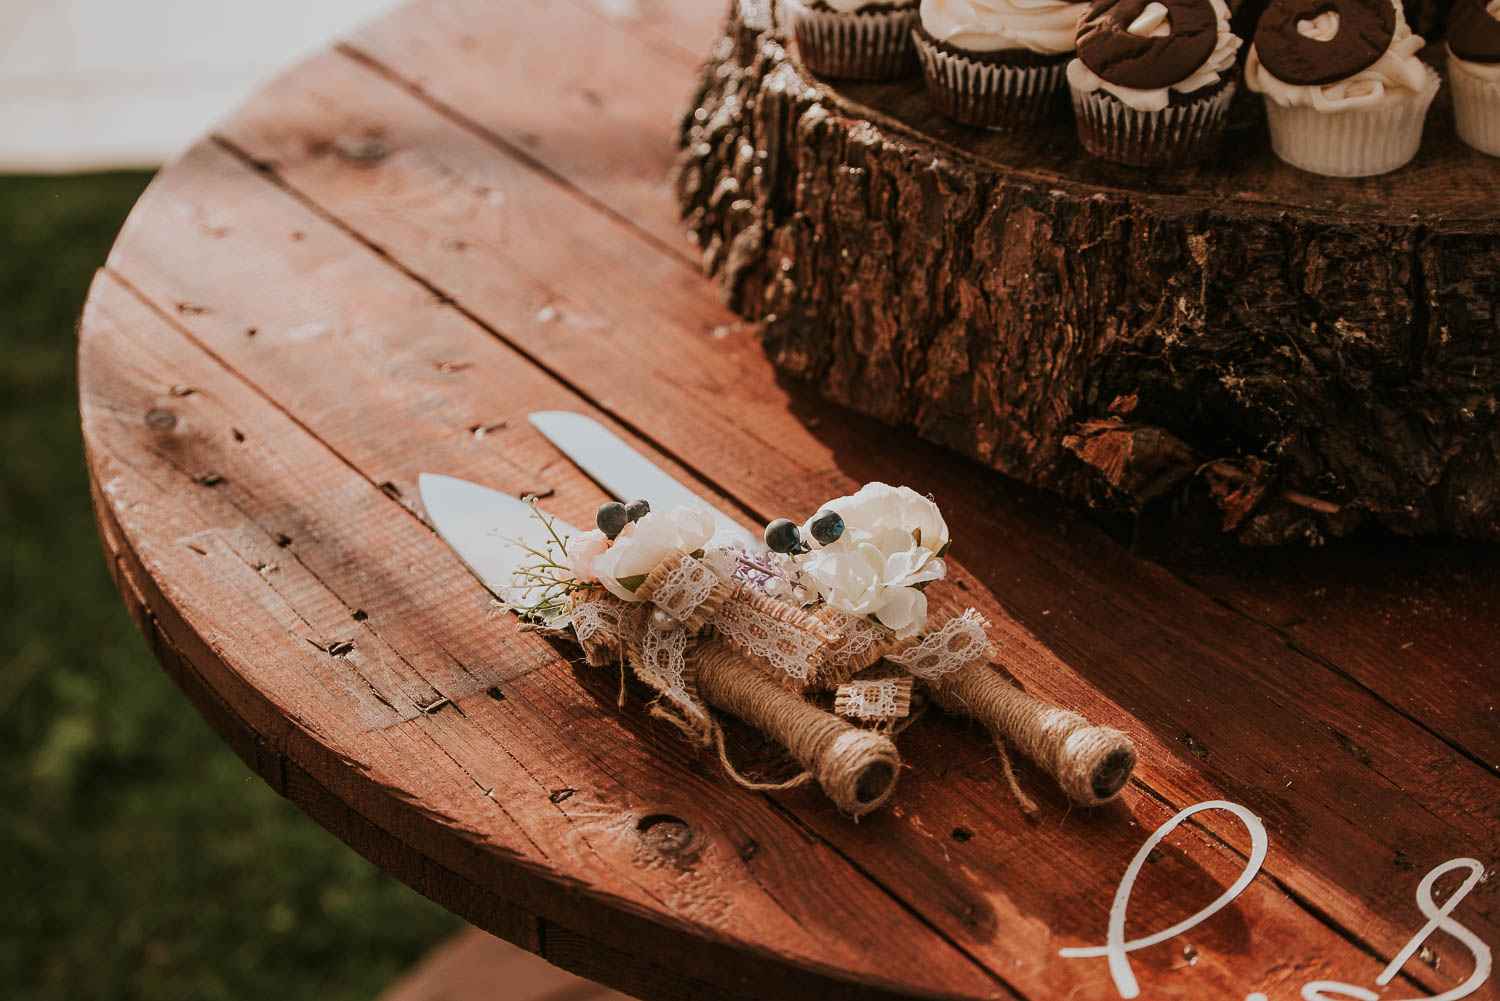 james-melinda-auckland-rustic-farm-wedding-64